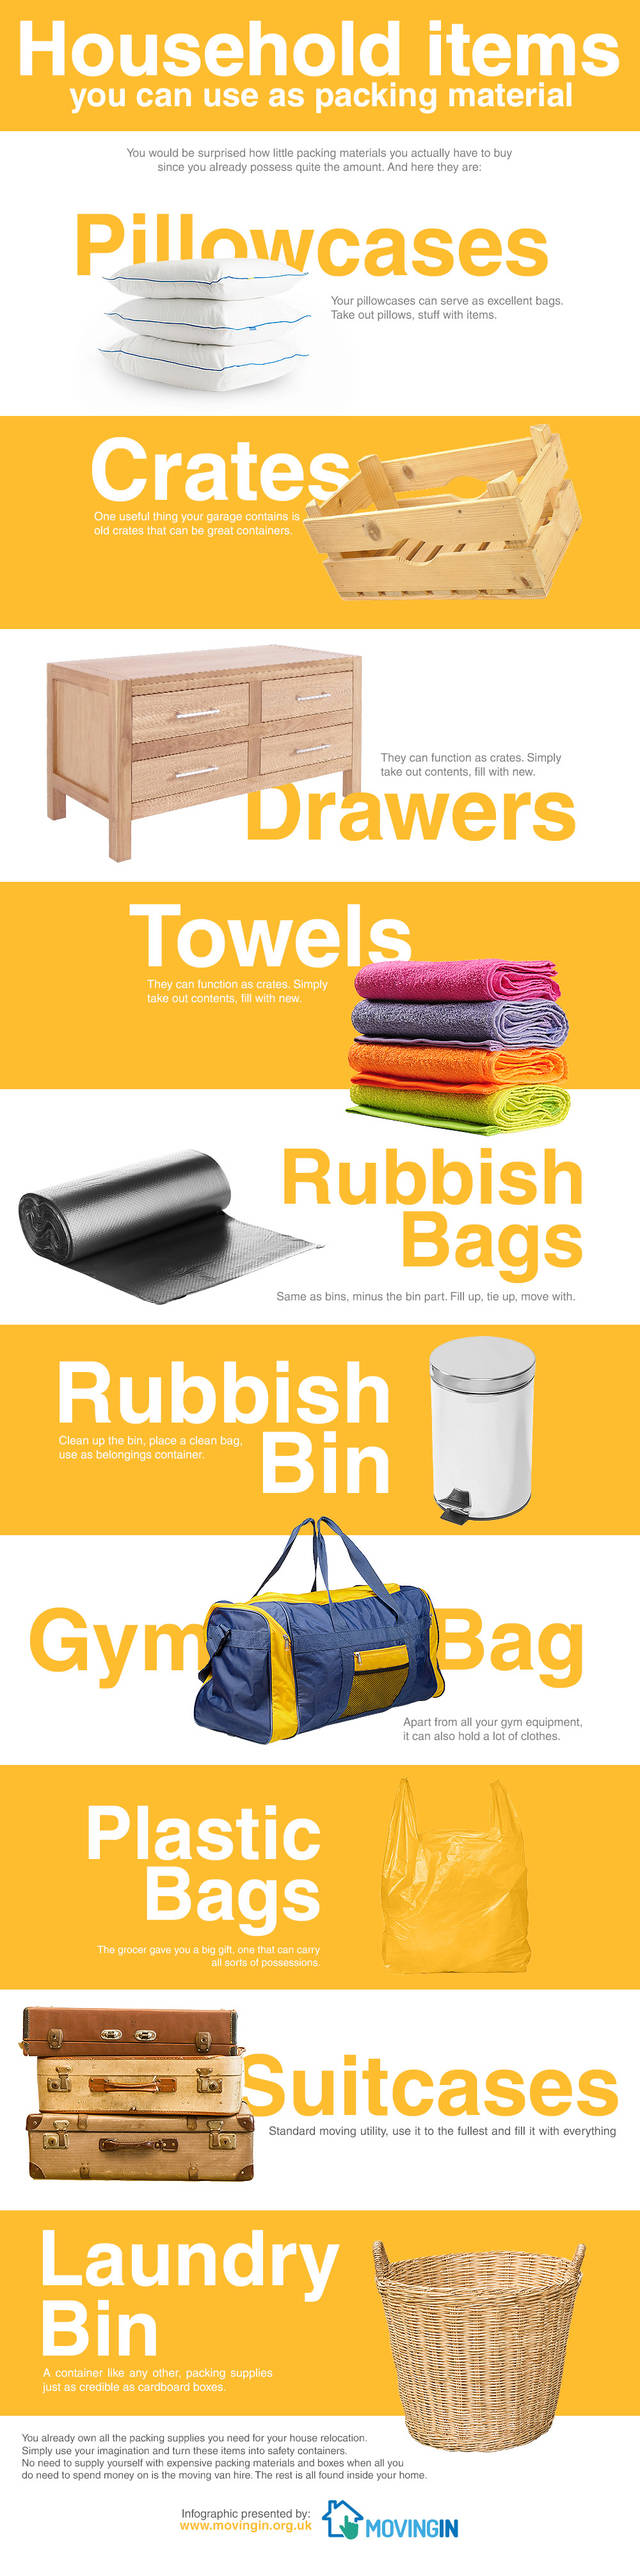 Household items you can use as packing material